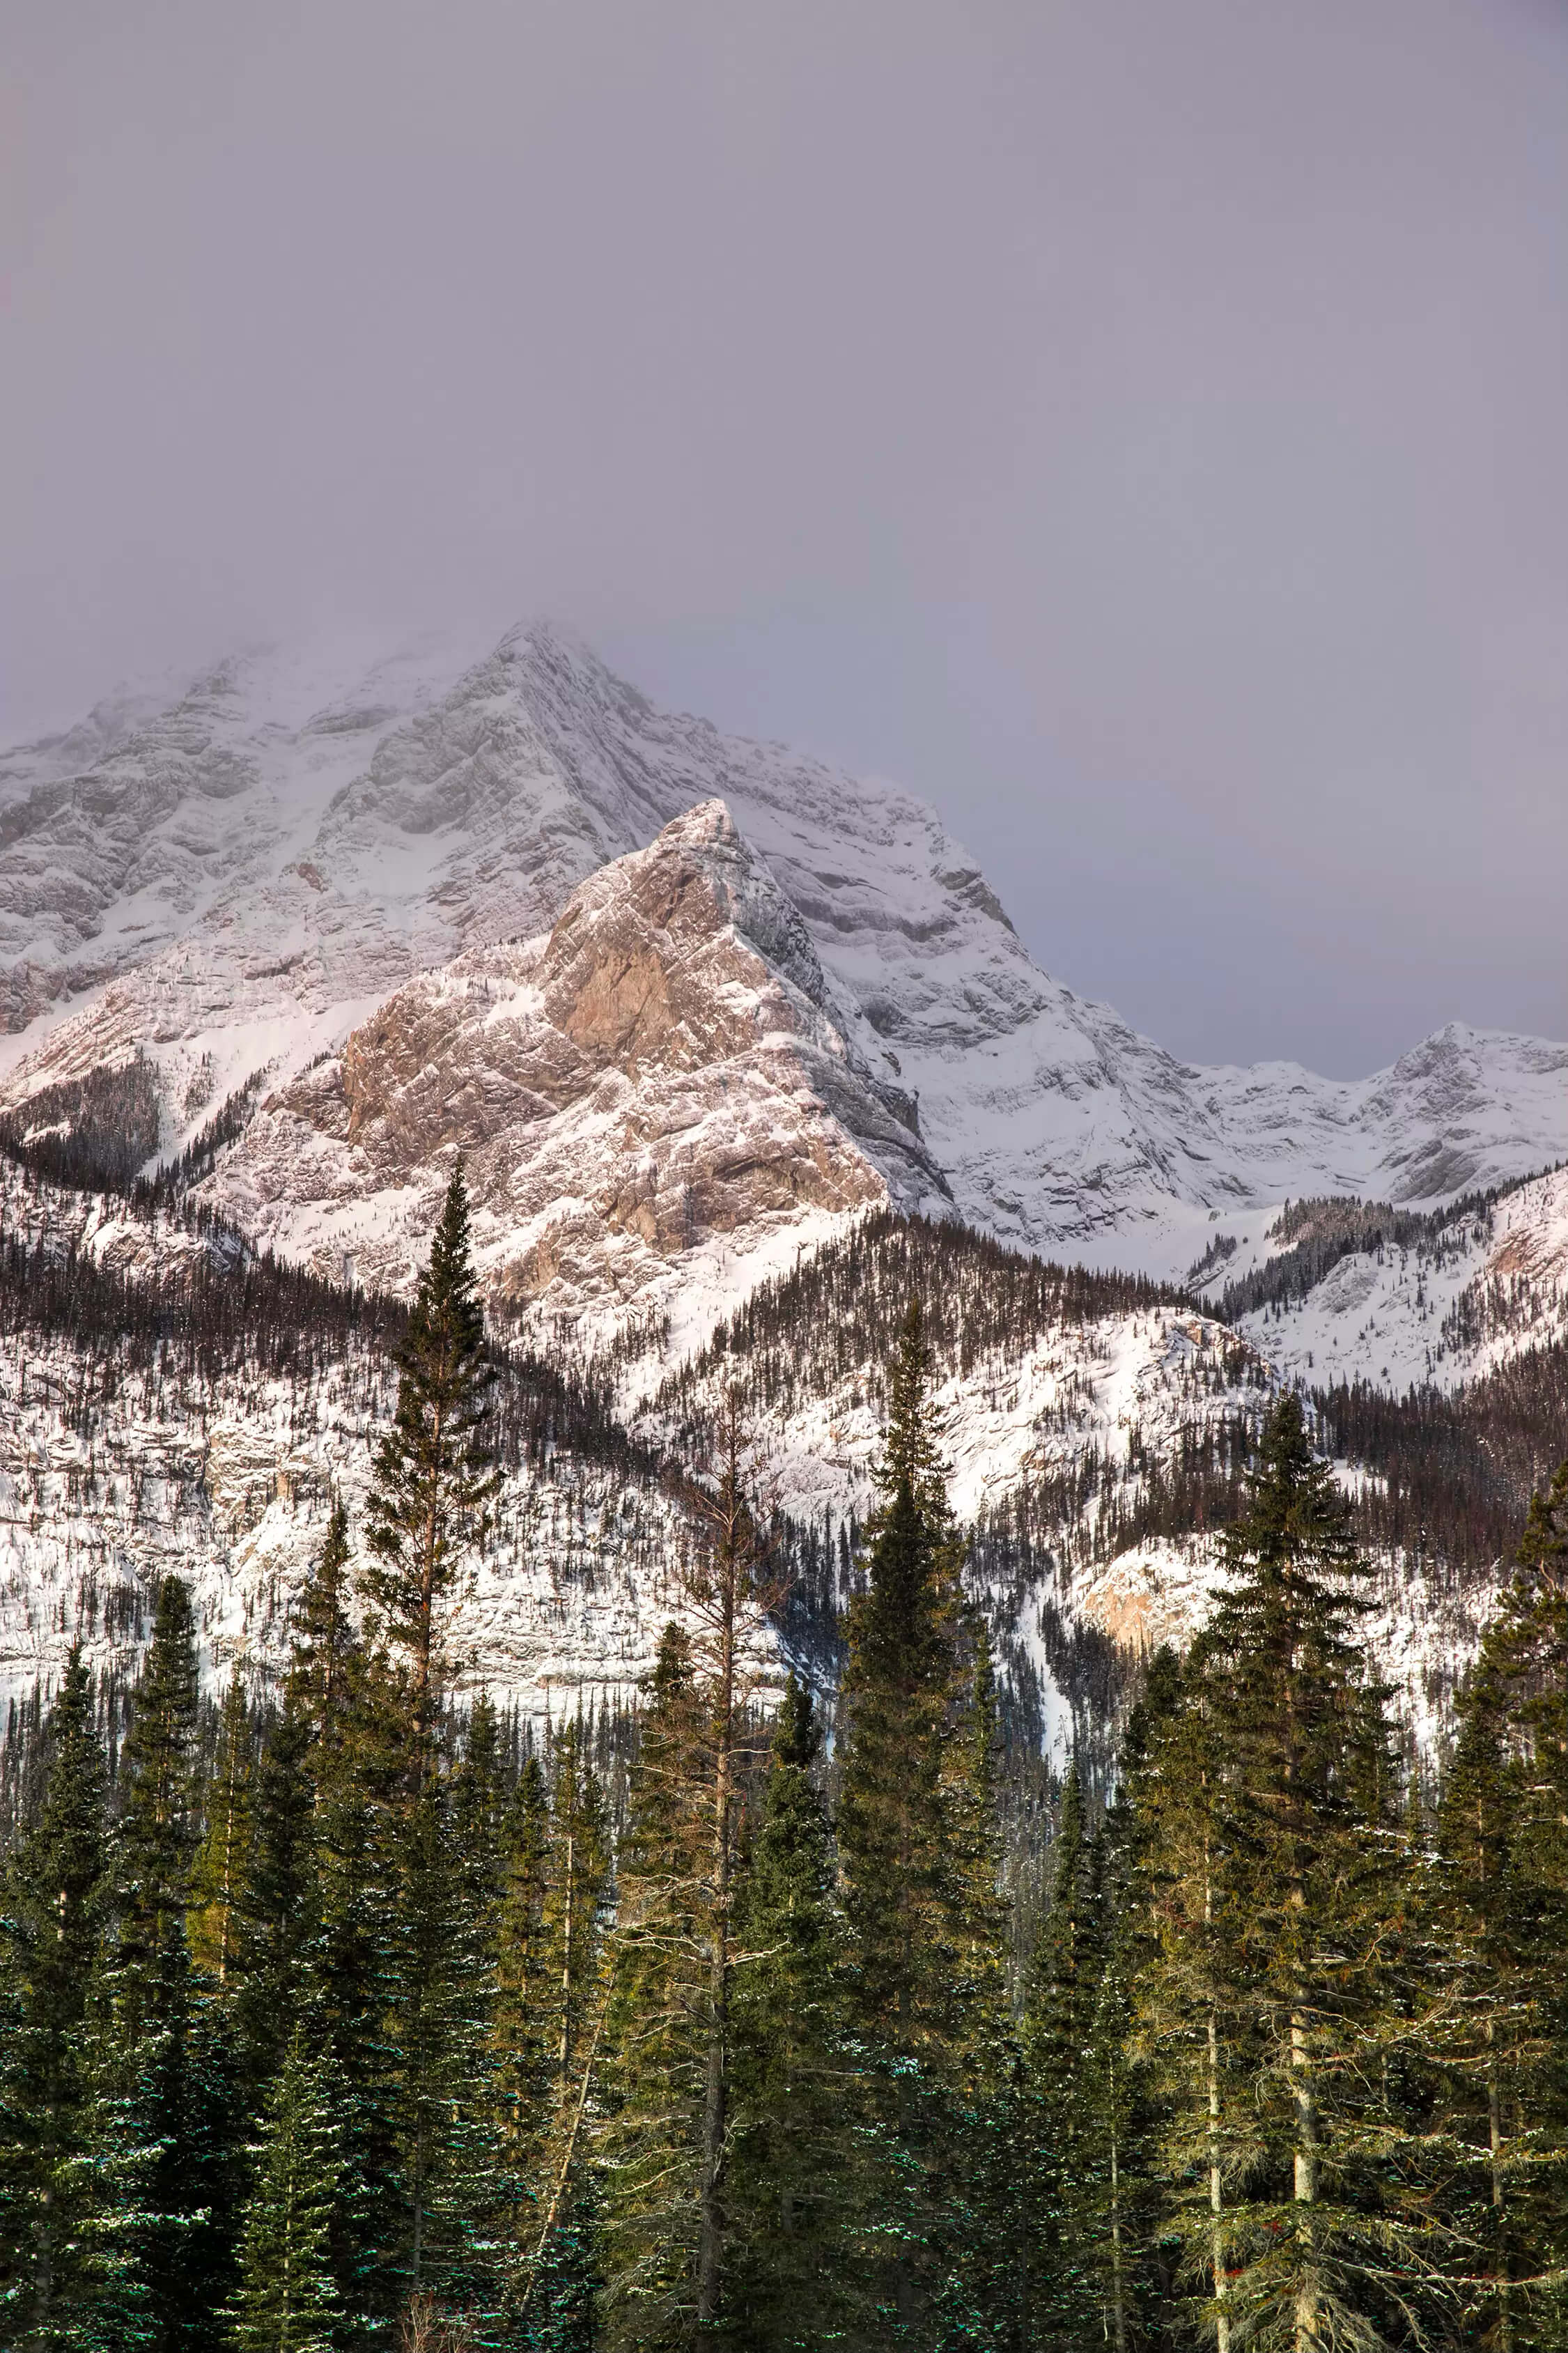 Mountains of Kananaskis